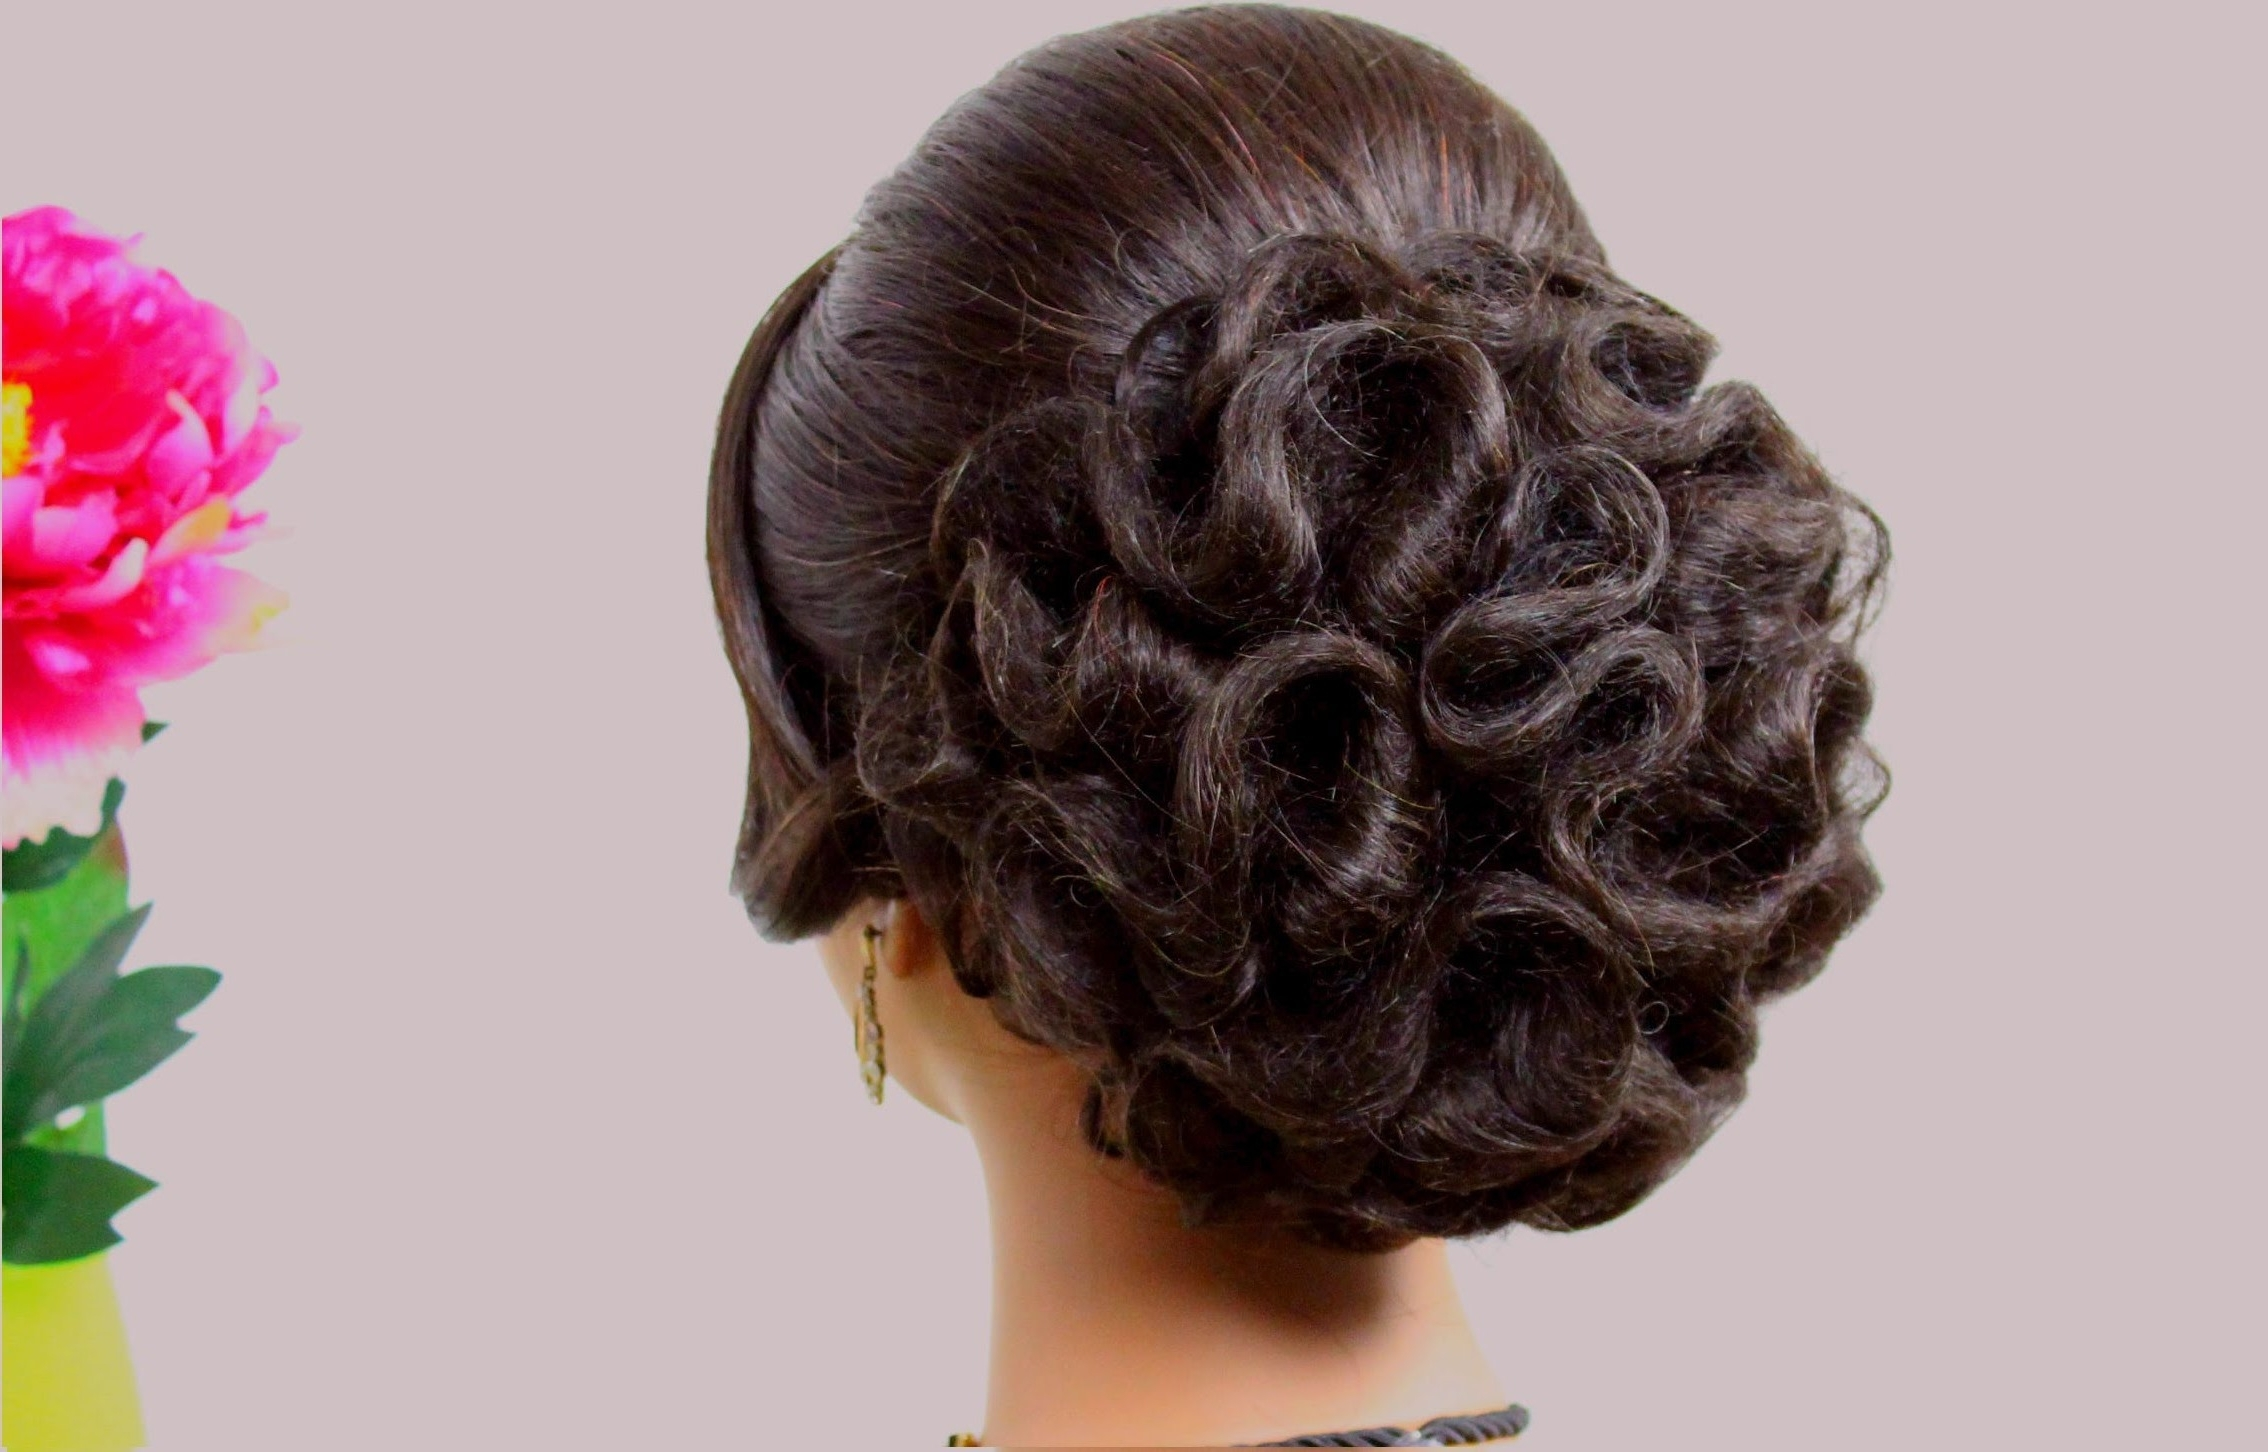 Updo Hairstyles For A Wedding Inspirational Bridal Hairstyle For Intended For Bridesmaid Updo Hairstyles (View 10 of 15)